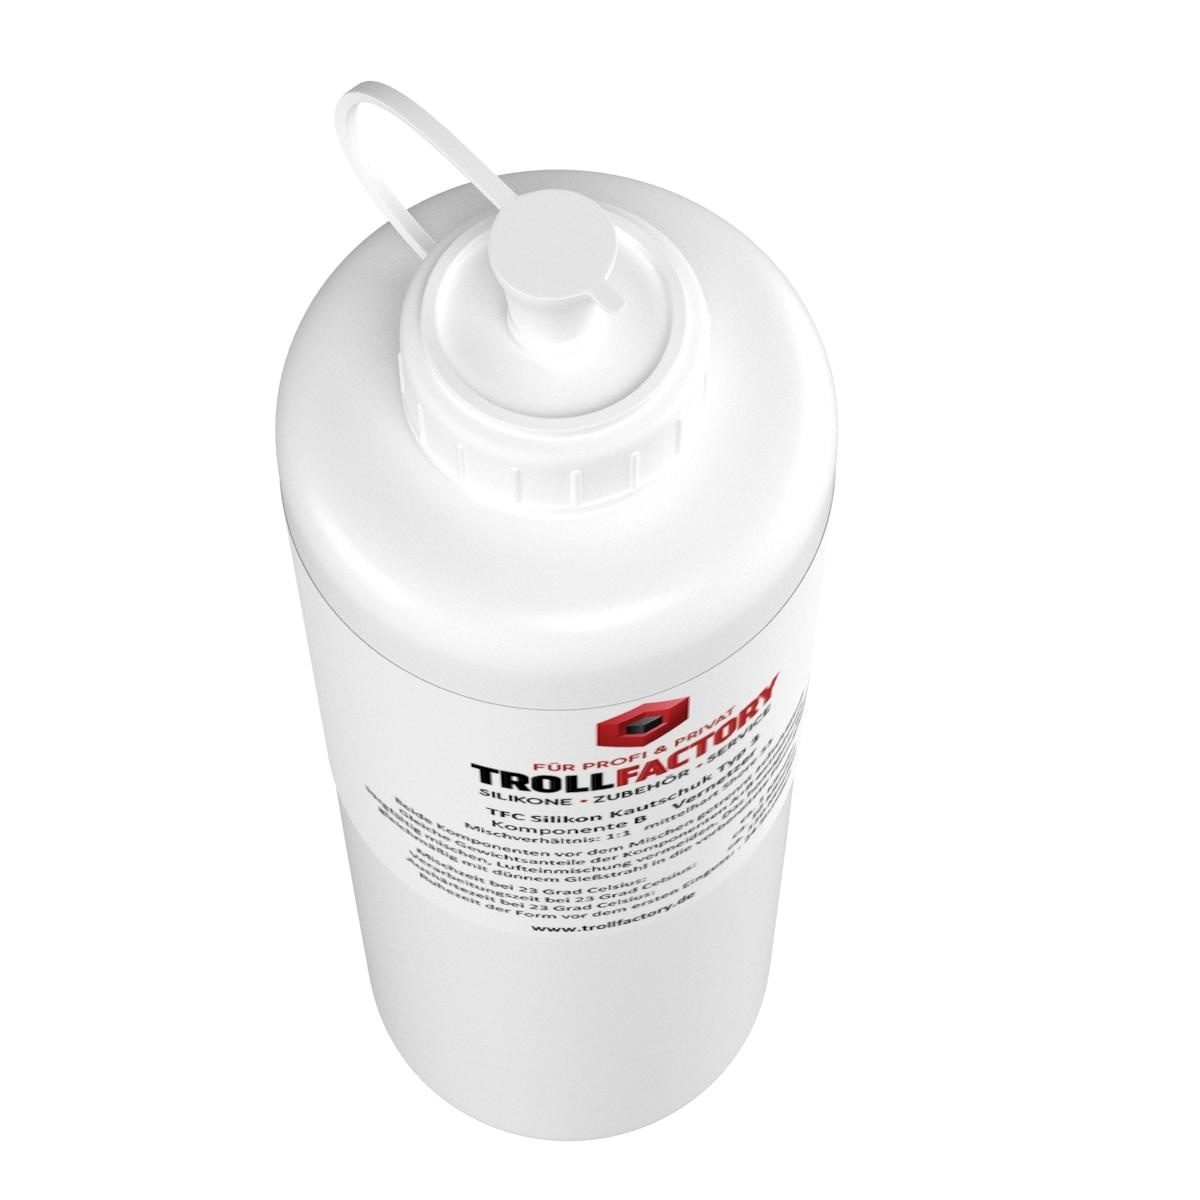 Troll Factory TFC Troll Factory Silicone Rubber Type 3 HB Tin hittebestendig 1000g